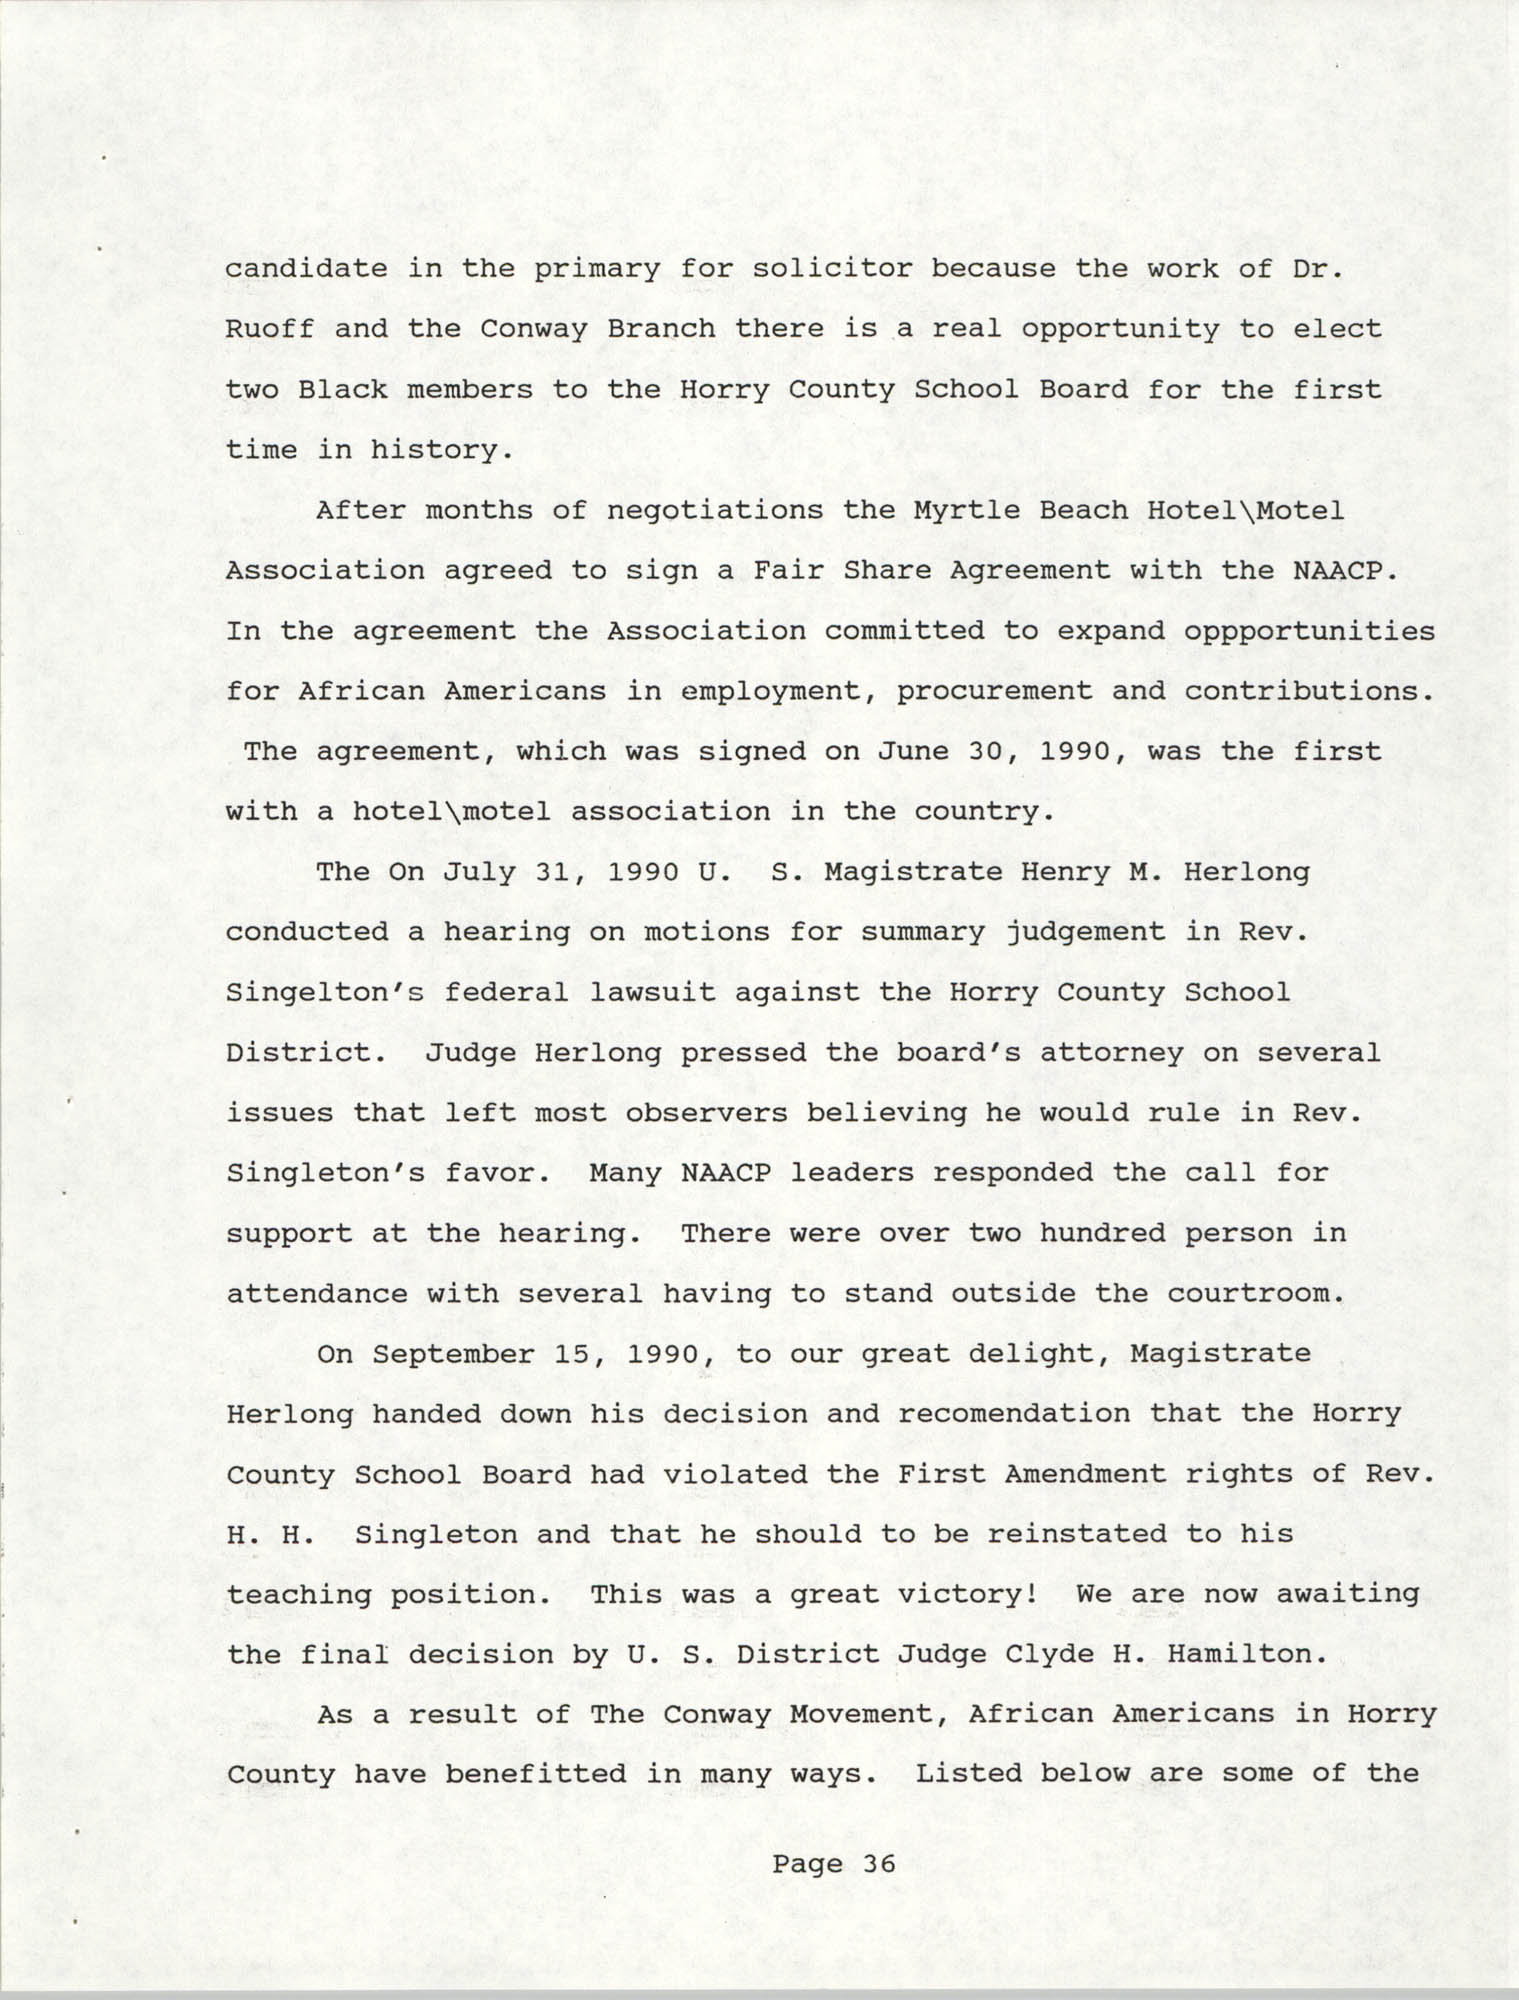 South Carolina Conference of Branches of the NAACP, 1990 Annual Report, Part Two, Page 36